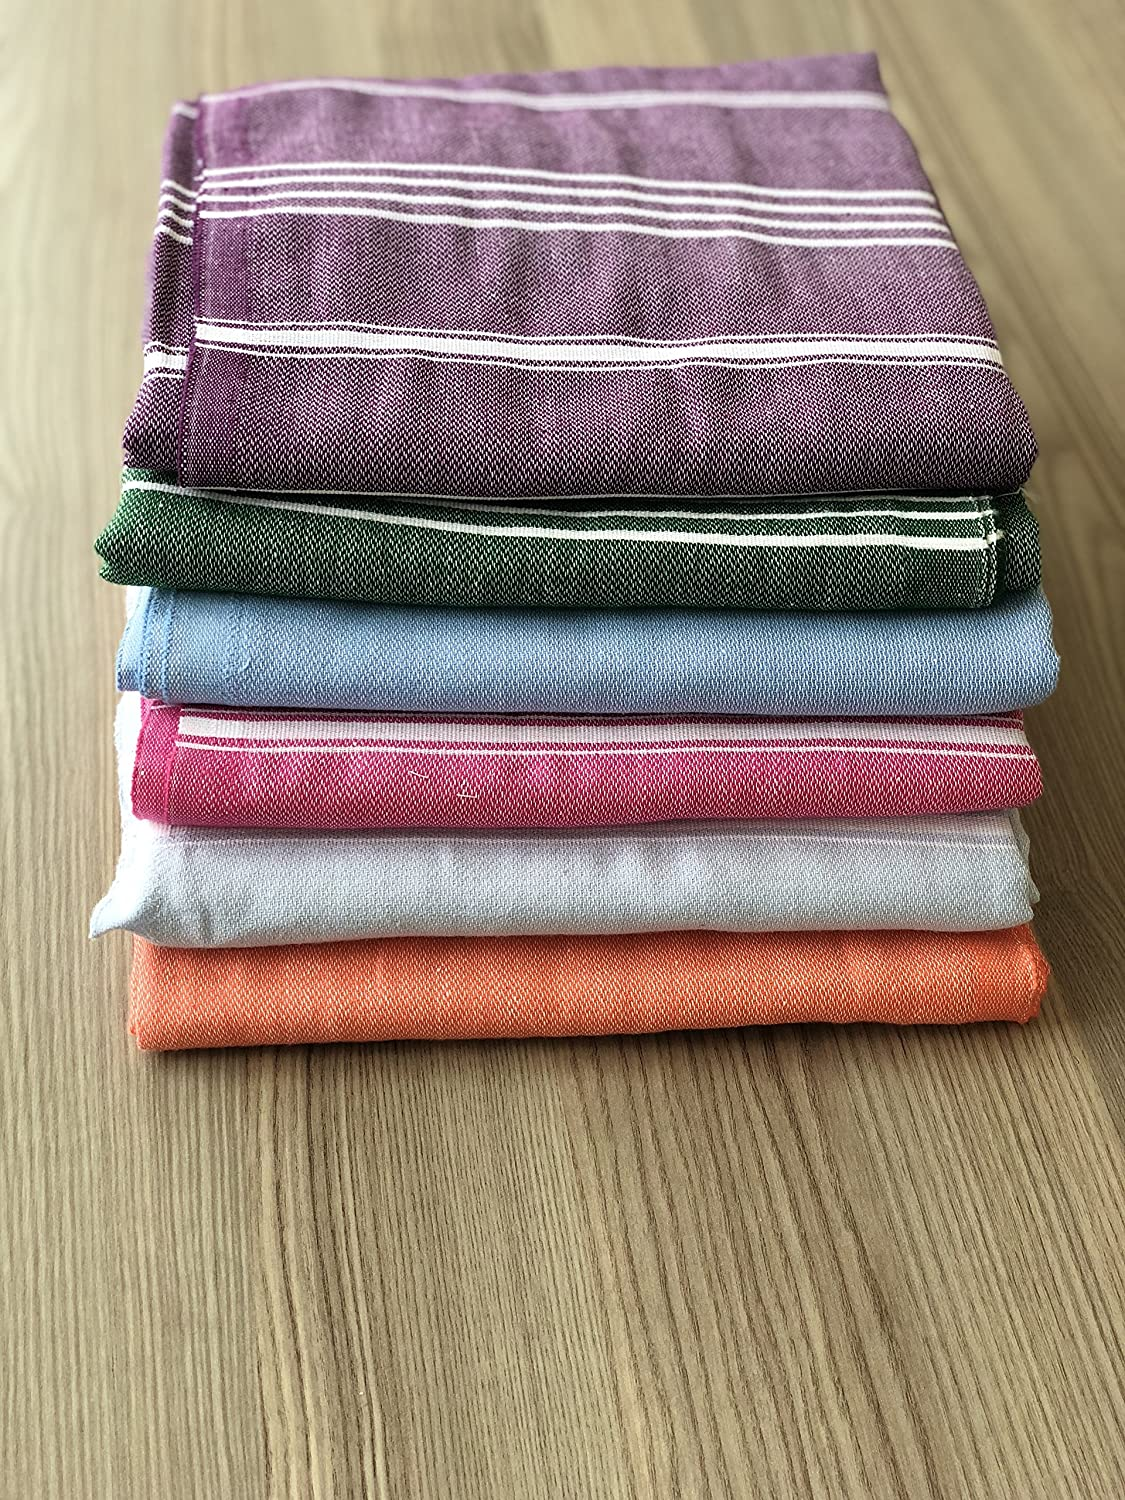 Sale Set of 6 XL Turkish Cotton Peshtemal Bath Beach Spa Sauna Hammam Gym Towel havluland BEG-2